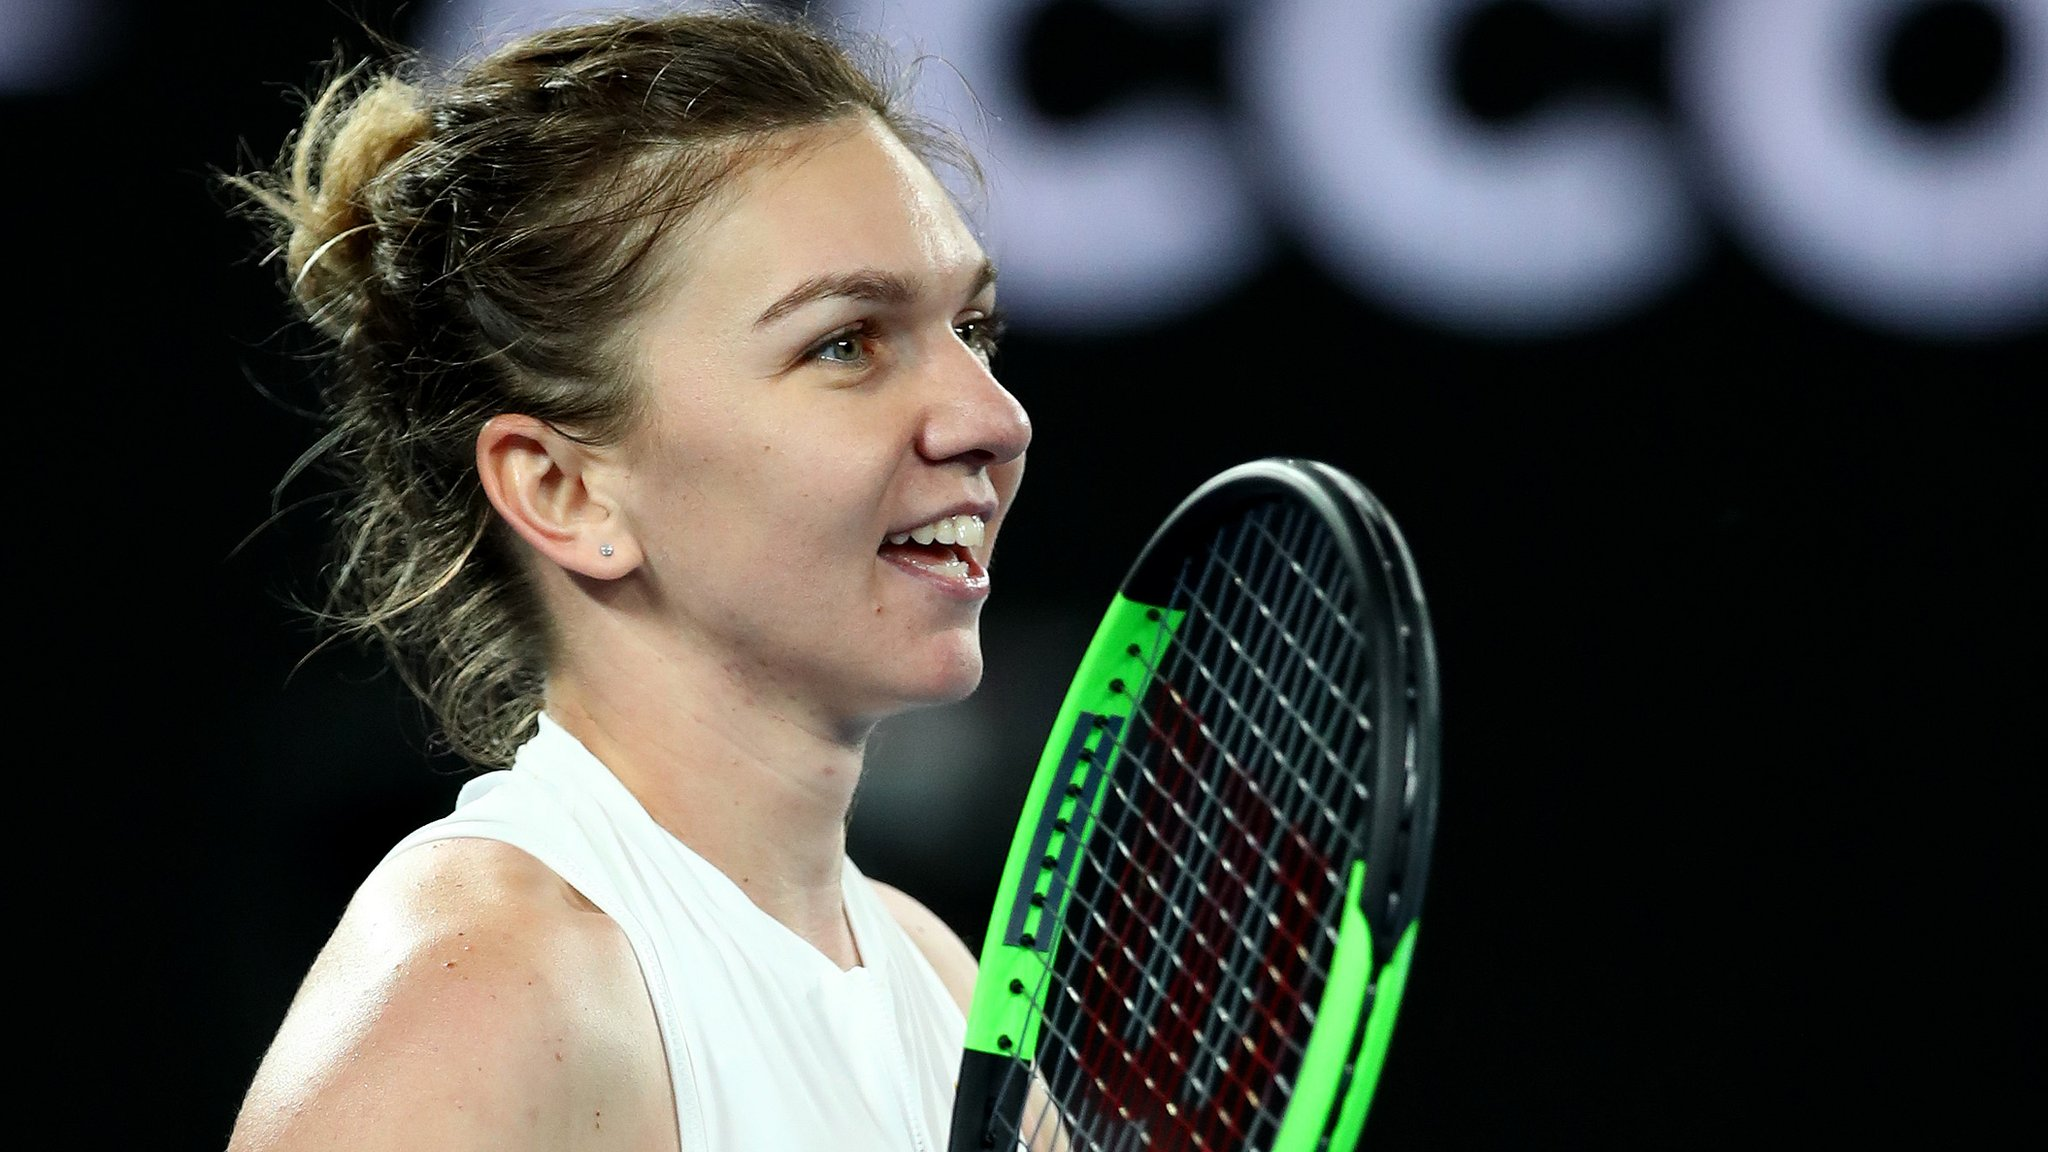 Australian Open 2019: Simona Halep survives scare to beat Sofia Kenin to advance